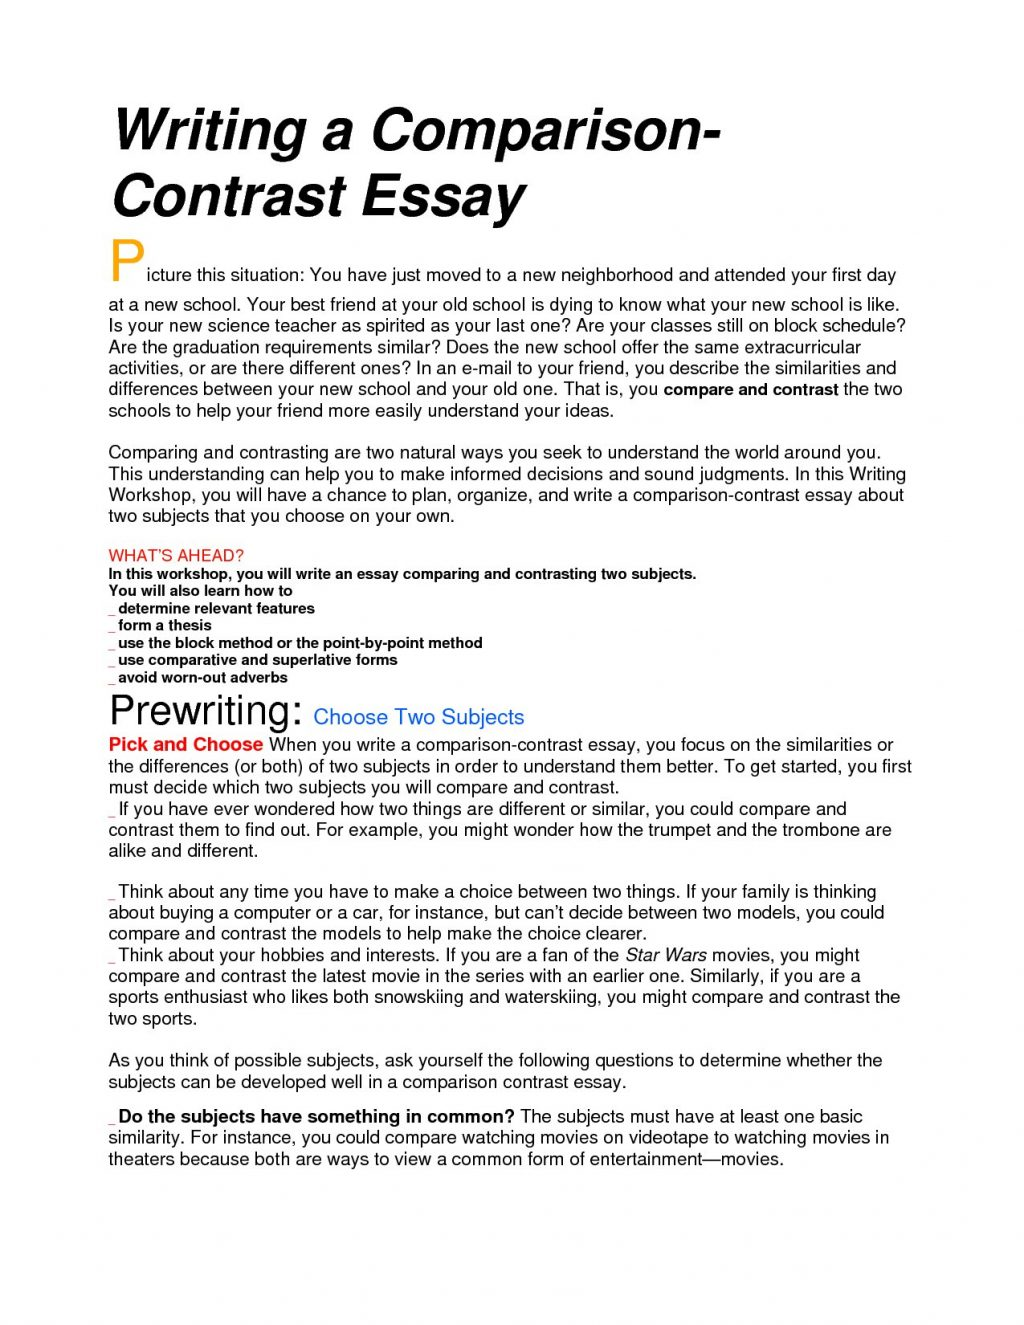 009 Sythesis Of Nanopolymeric Cheap Thesis Statement Proofreading Compare And Contrasty Topics For High Schoolents Photo Comparisonys Esl How To Teach The 1024x1325 Unforgettable Comparison Contrast Essay School Prompts Middle Full